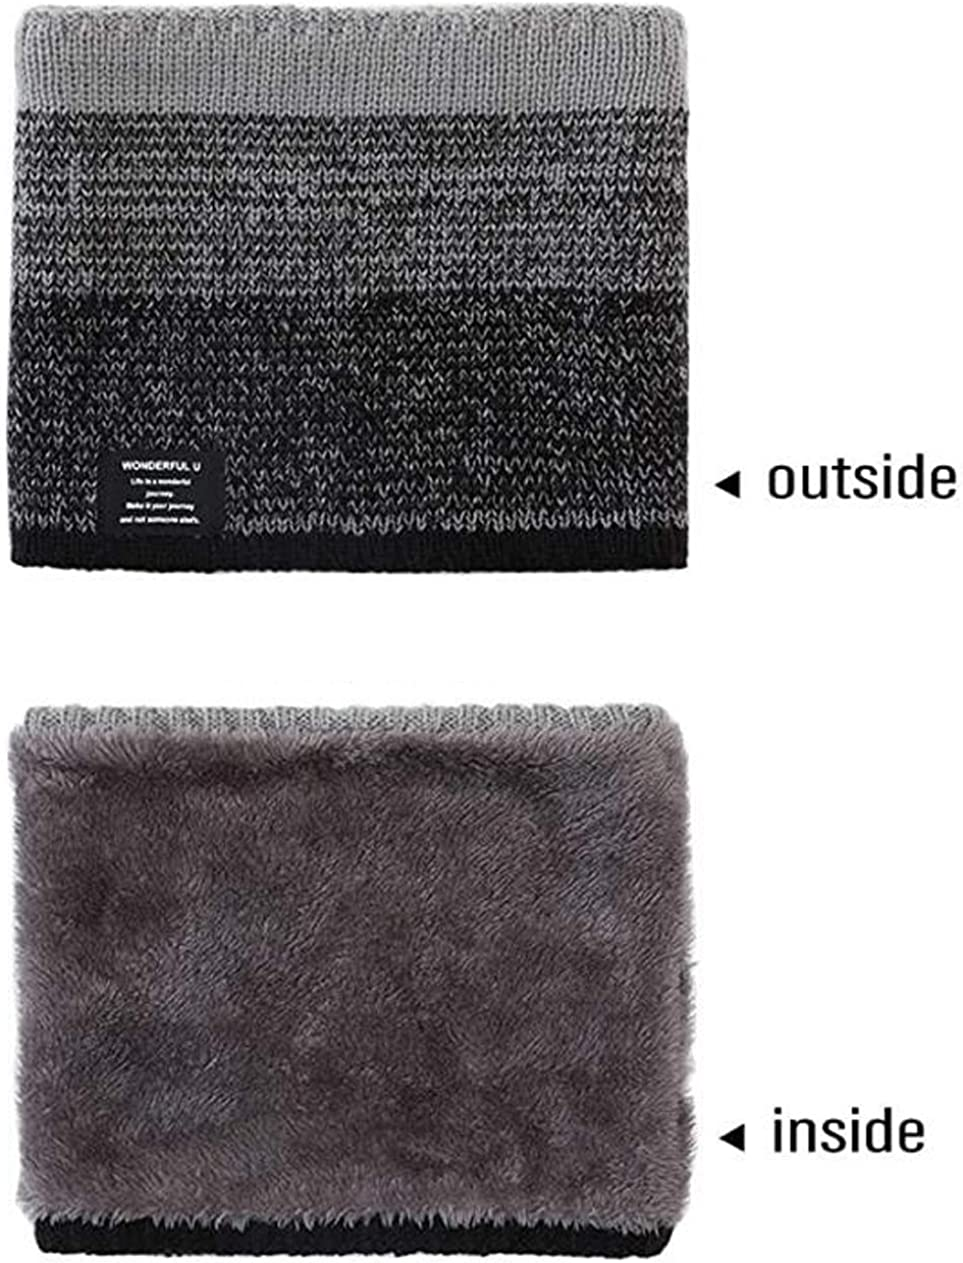 Women Winter Neck Warmer Gaiter Double-Layer Soft Fleece Lined Thick Knit Circle Scarf Windproof